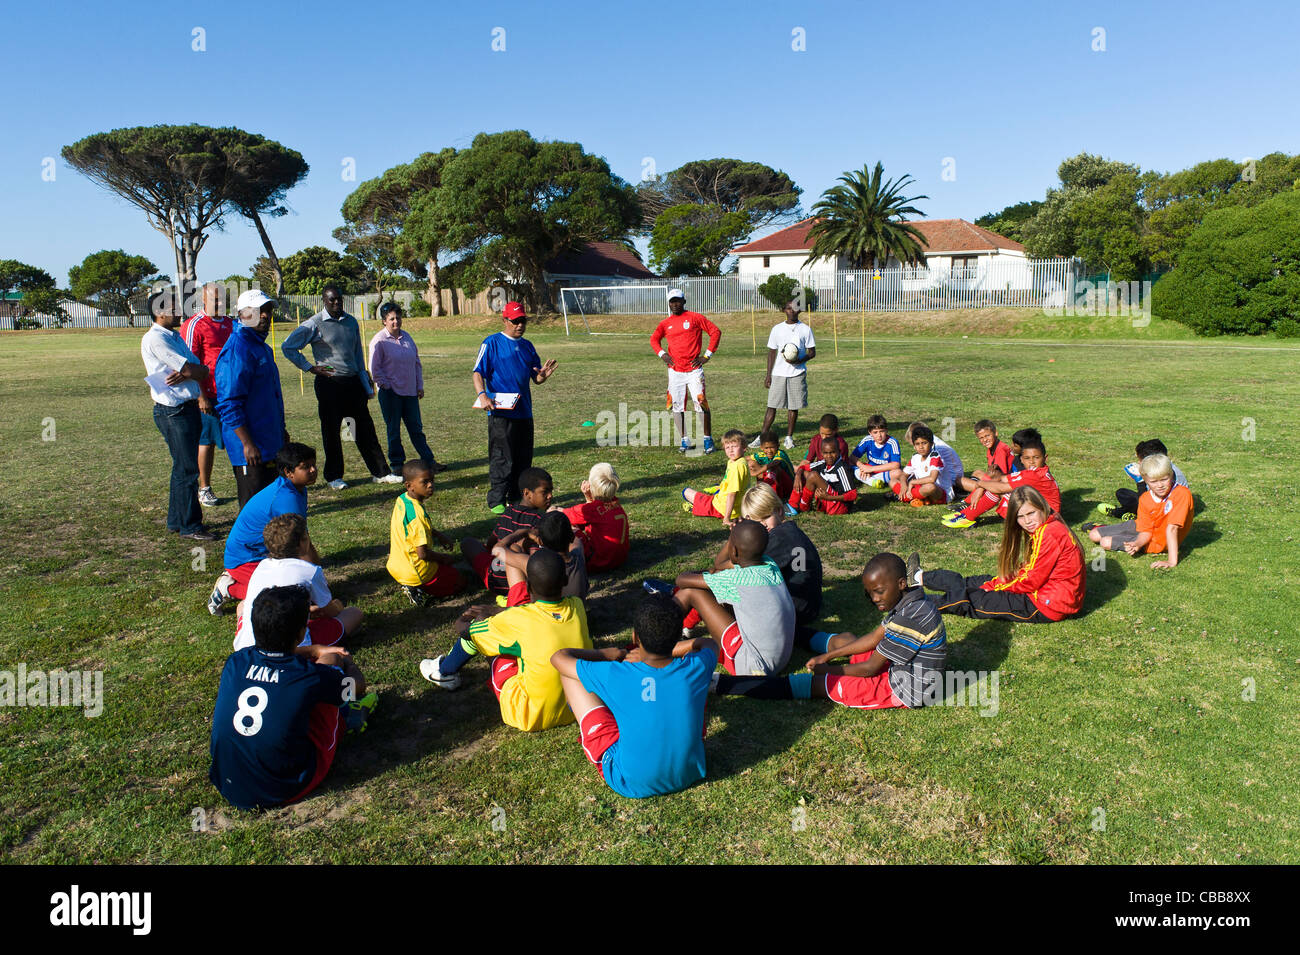 Football coaches instructing a young players during a training session Cape Town South Africa - Stock Image